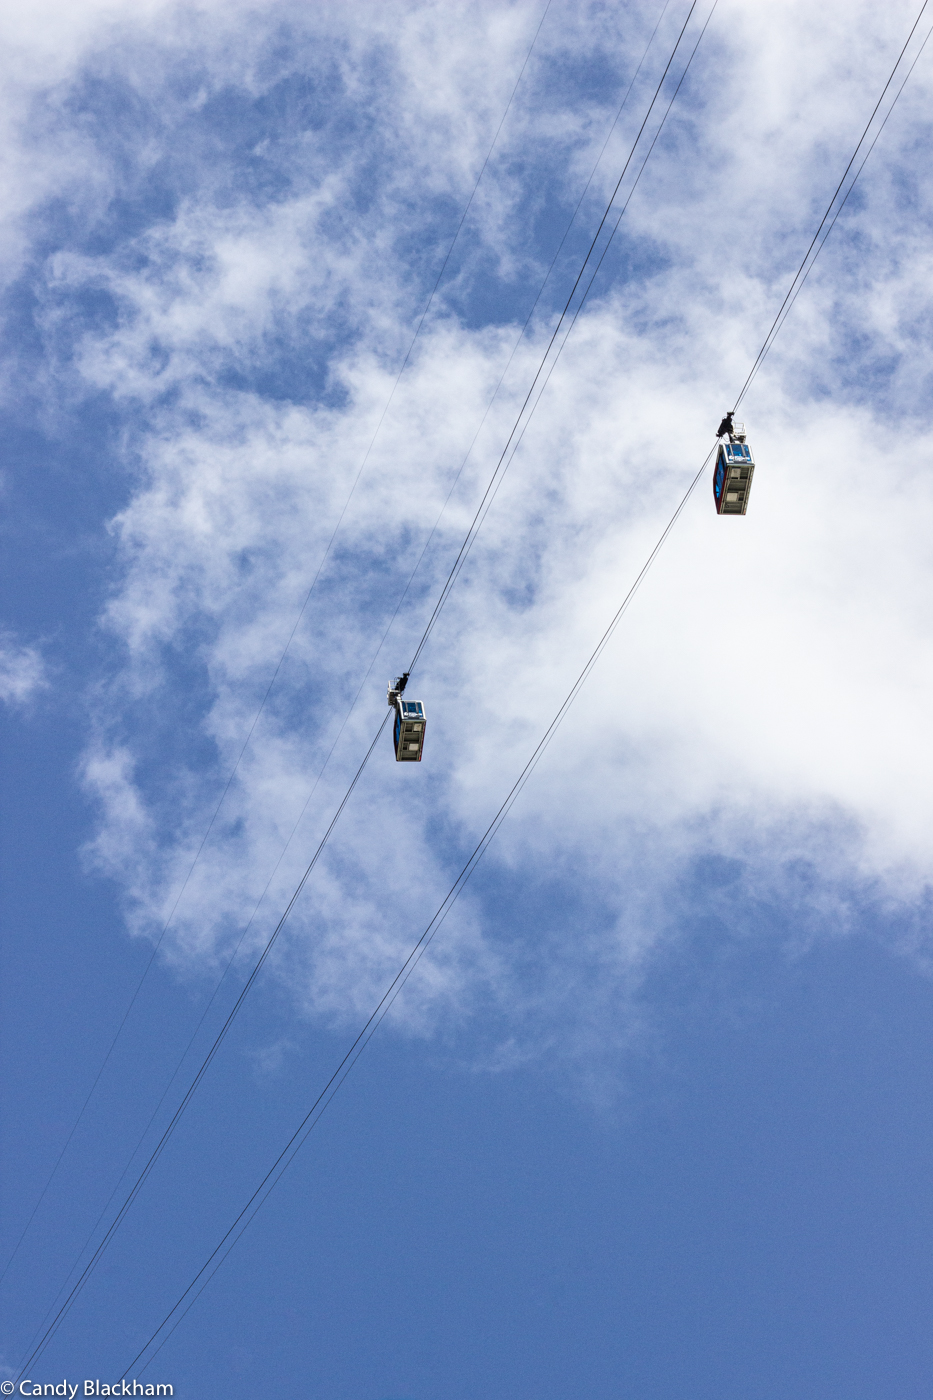 Cable cars crossing at Fuente De